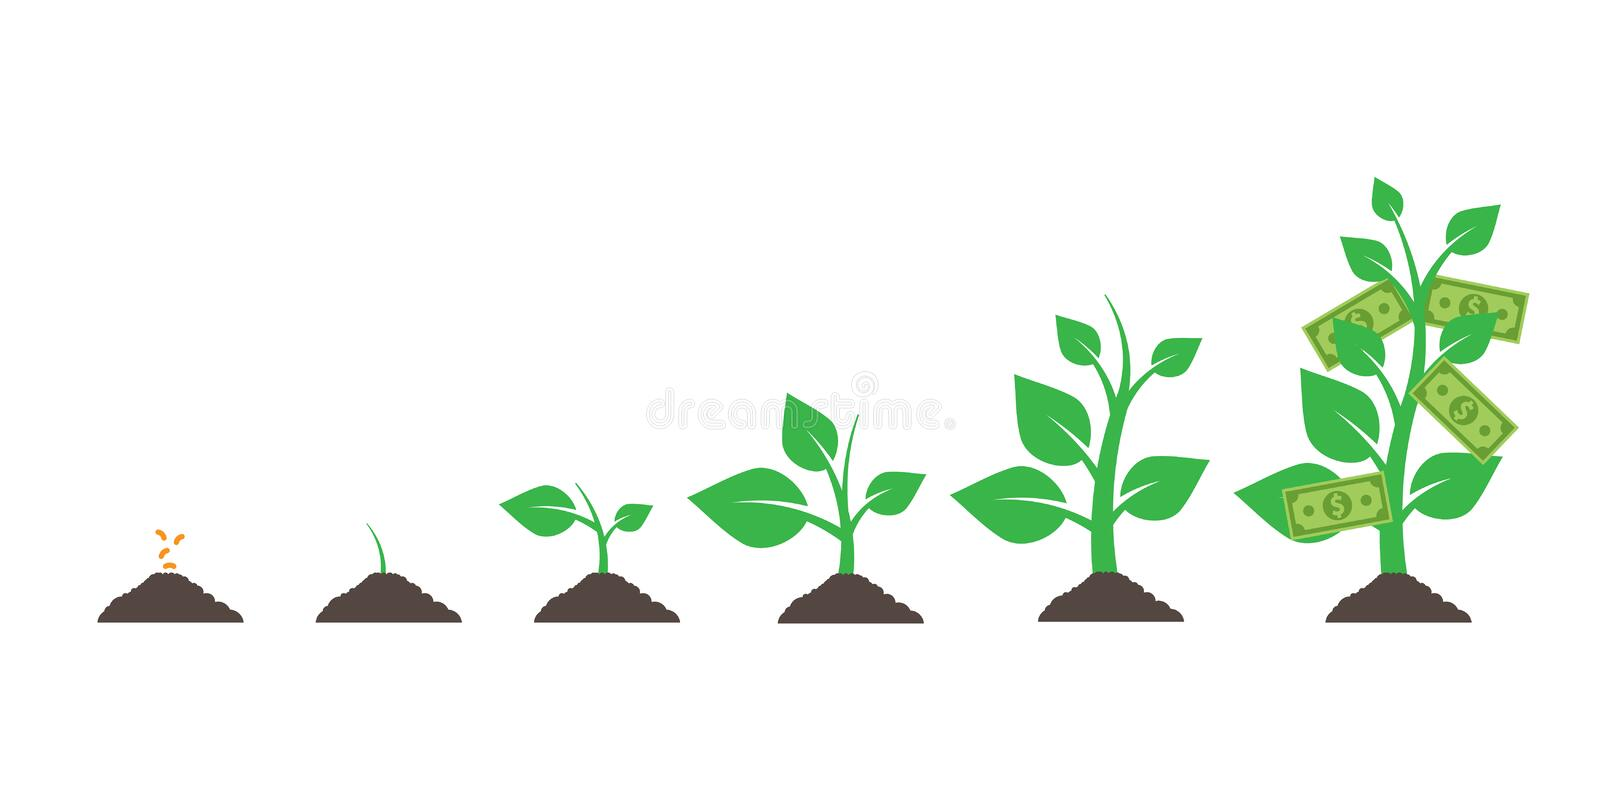 Growing money tree. isolated on white background. Vector illustration. Eps. Growing money tree. isolated on white background. Vector illustration. Eps 10 vector illustration